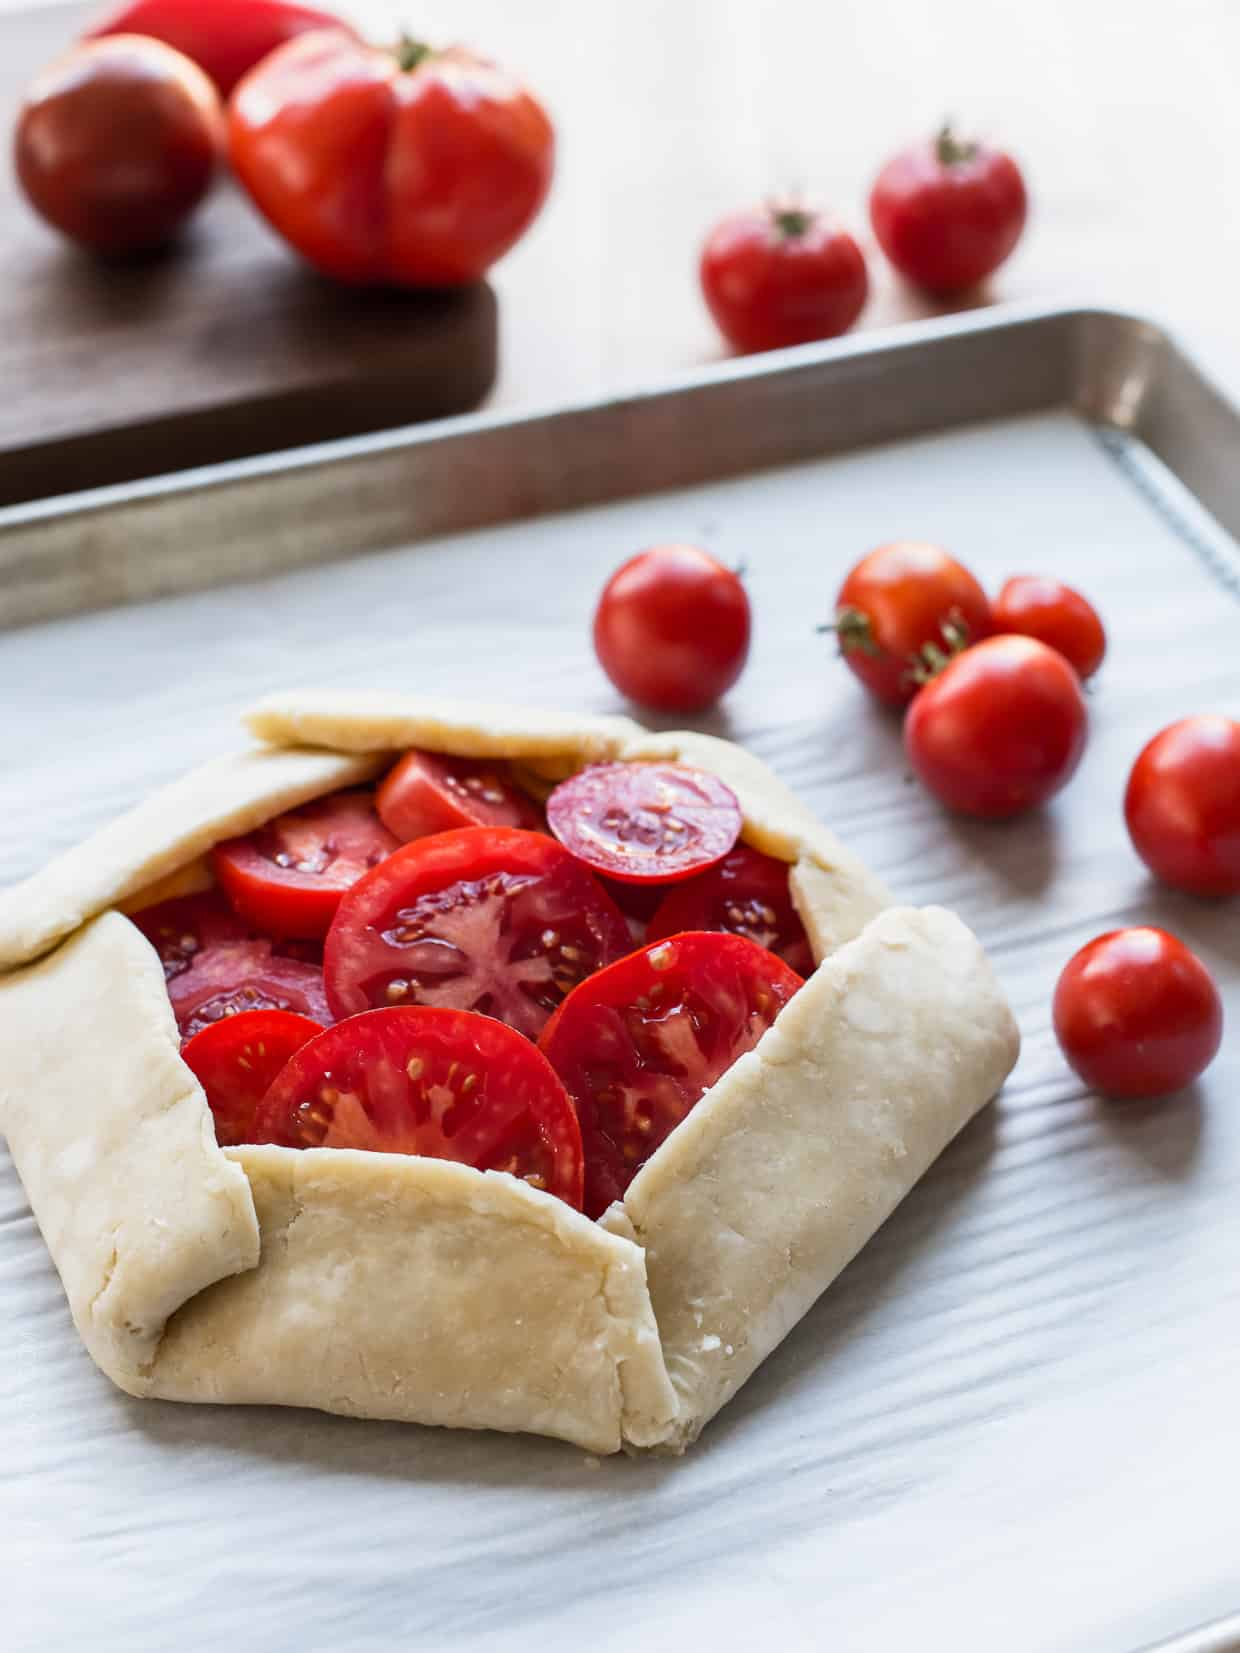 A flaky crust folded around slices of heirloom tomatoes on a baking sheet ready for the oven.